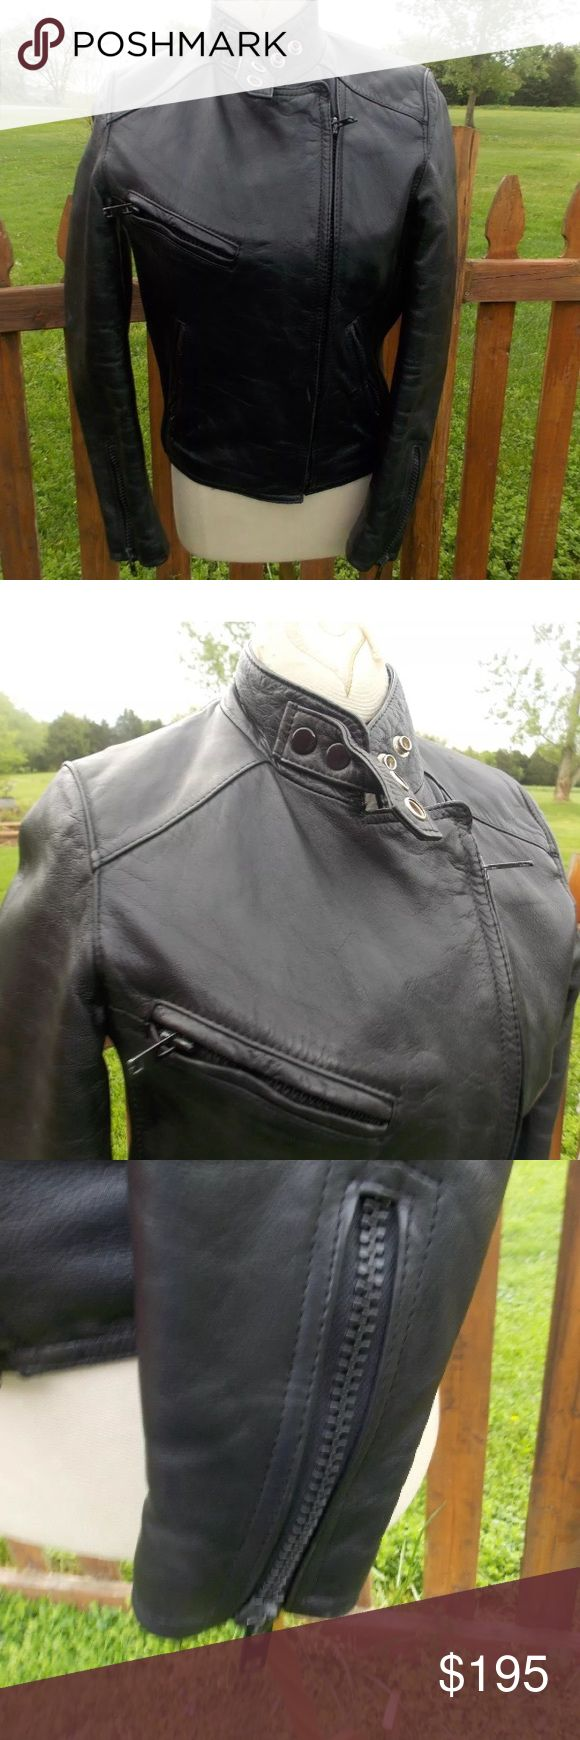 "Hein Gericke AMF Harley Davidson Leather Jacket XS Size 30 (XS). Measures: shoulder to shoulder: 14.5"". Pit to pit: 18"". Bottom of the collar in the back to the bottom of the jacket: 22"". Shoulder to cuff: 22.5"". Pit to cuff: 16.5"". Super nice riding Jacket. If you are familiar with Hein Gericke leathers, you know the quality of this jacket. Be sure to view the other items in our closet. We offer  women's, Mens and kids items in a variety of sizes. Bundle and save!! Thank you for viewing our…"